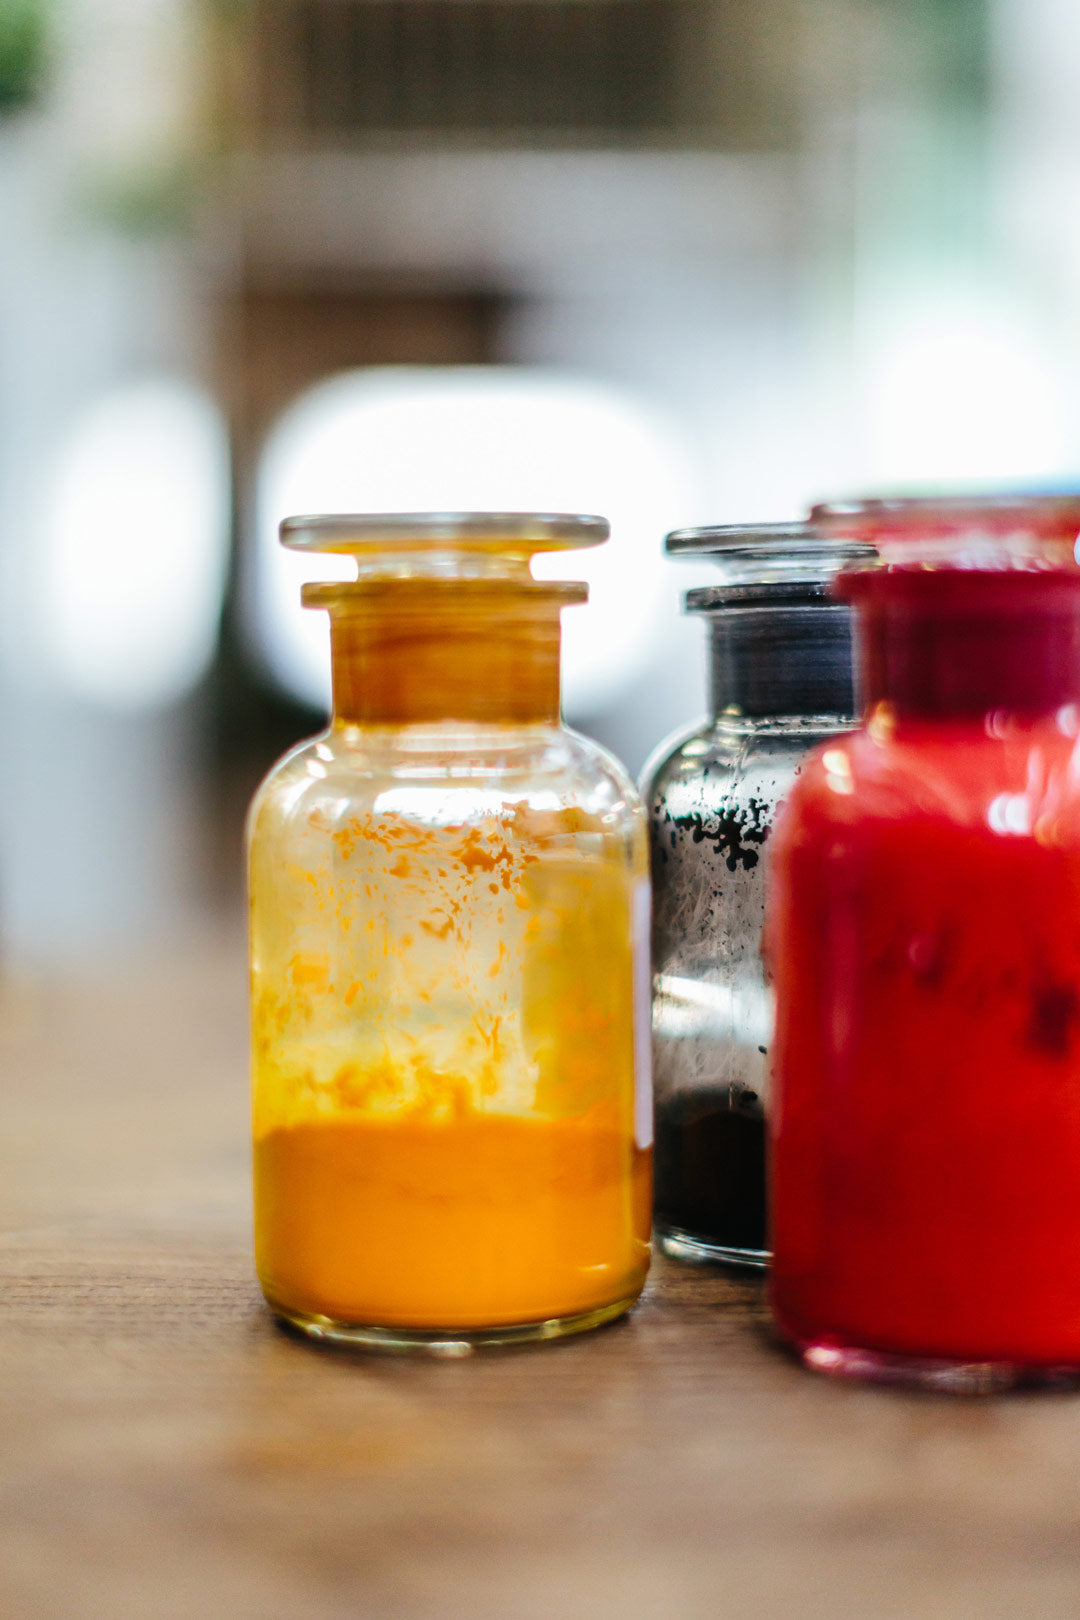 Yellow and red powdered dye inside two glass jars